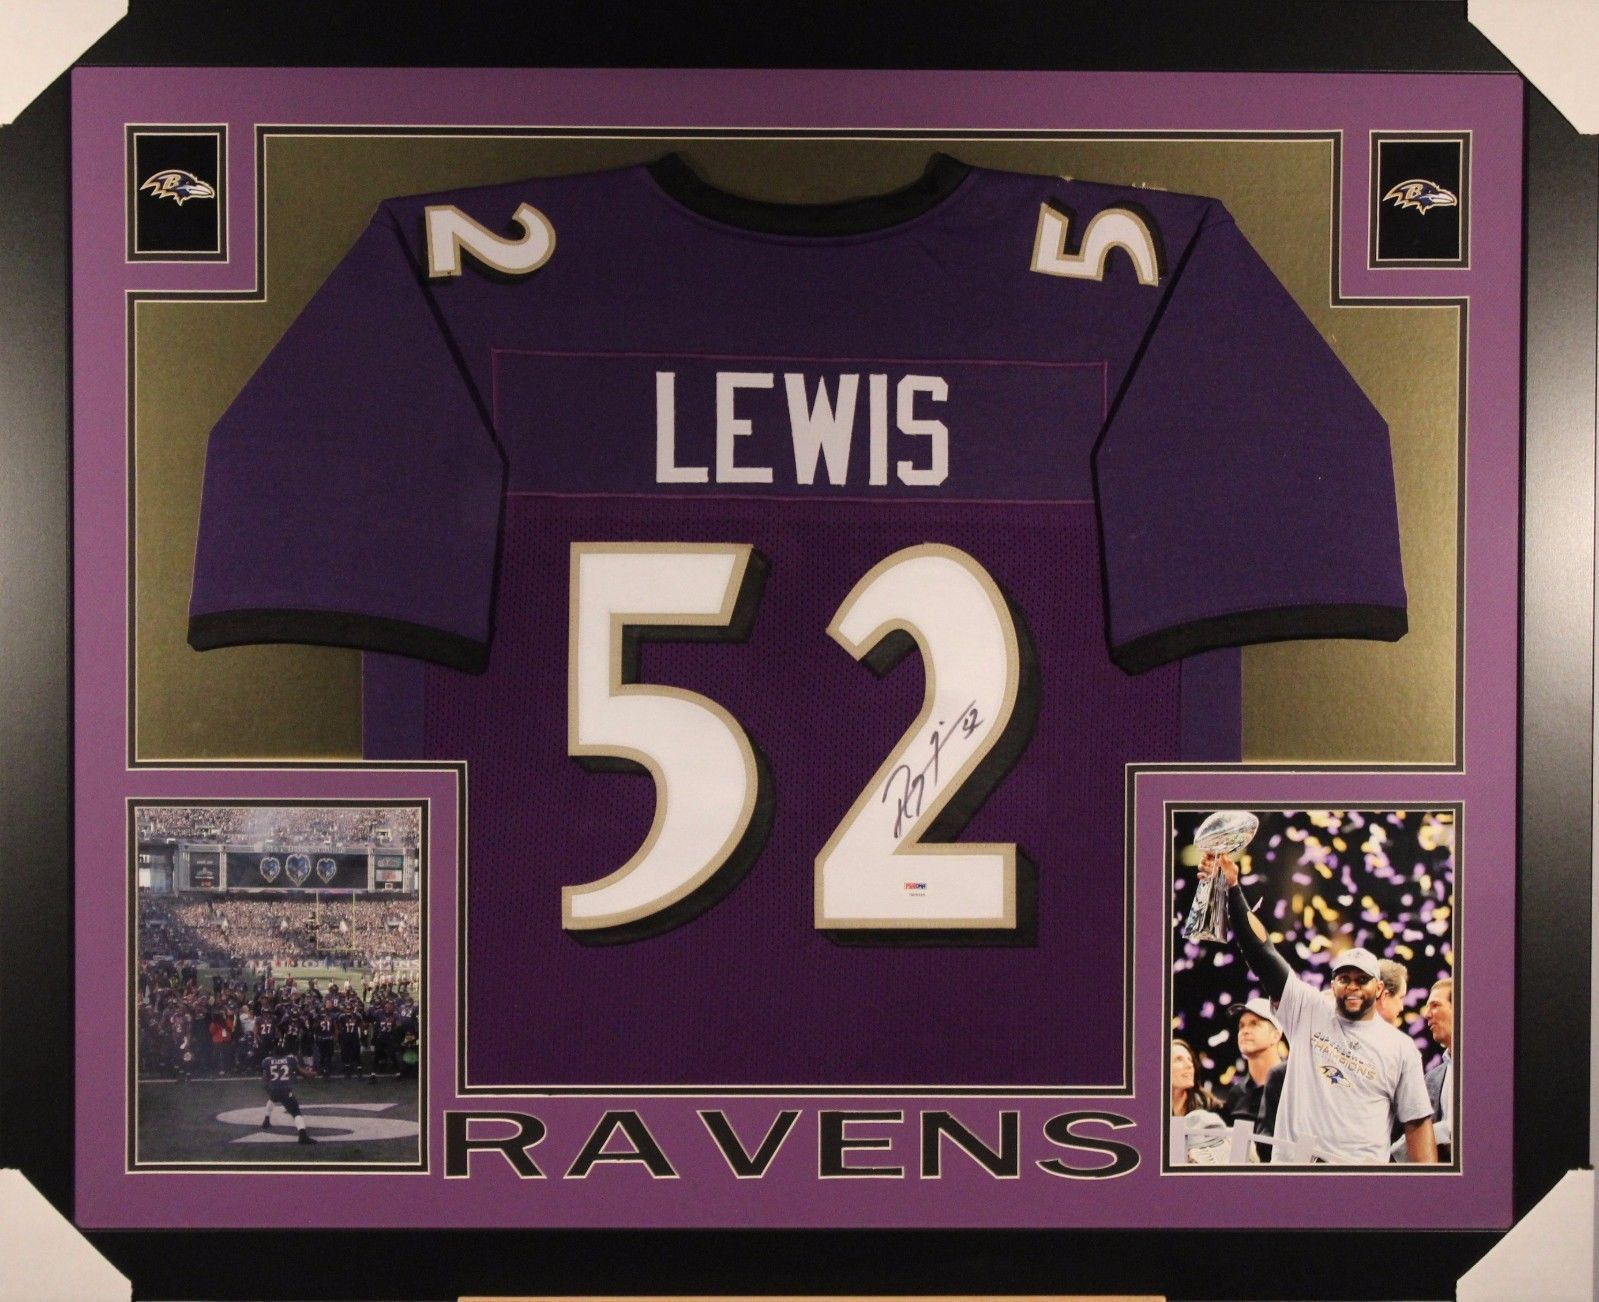 RAY LEWIS AUTOGRAPHED FRAMED AND MATTED BALTIMORE RAVENS JERSEY